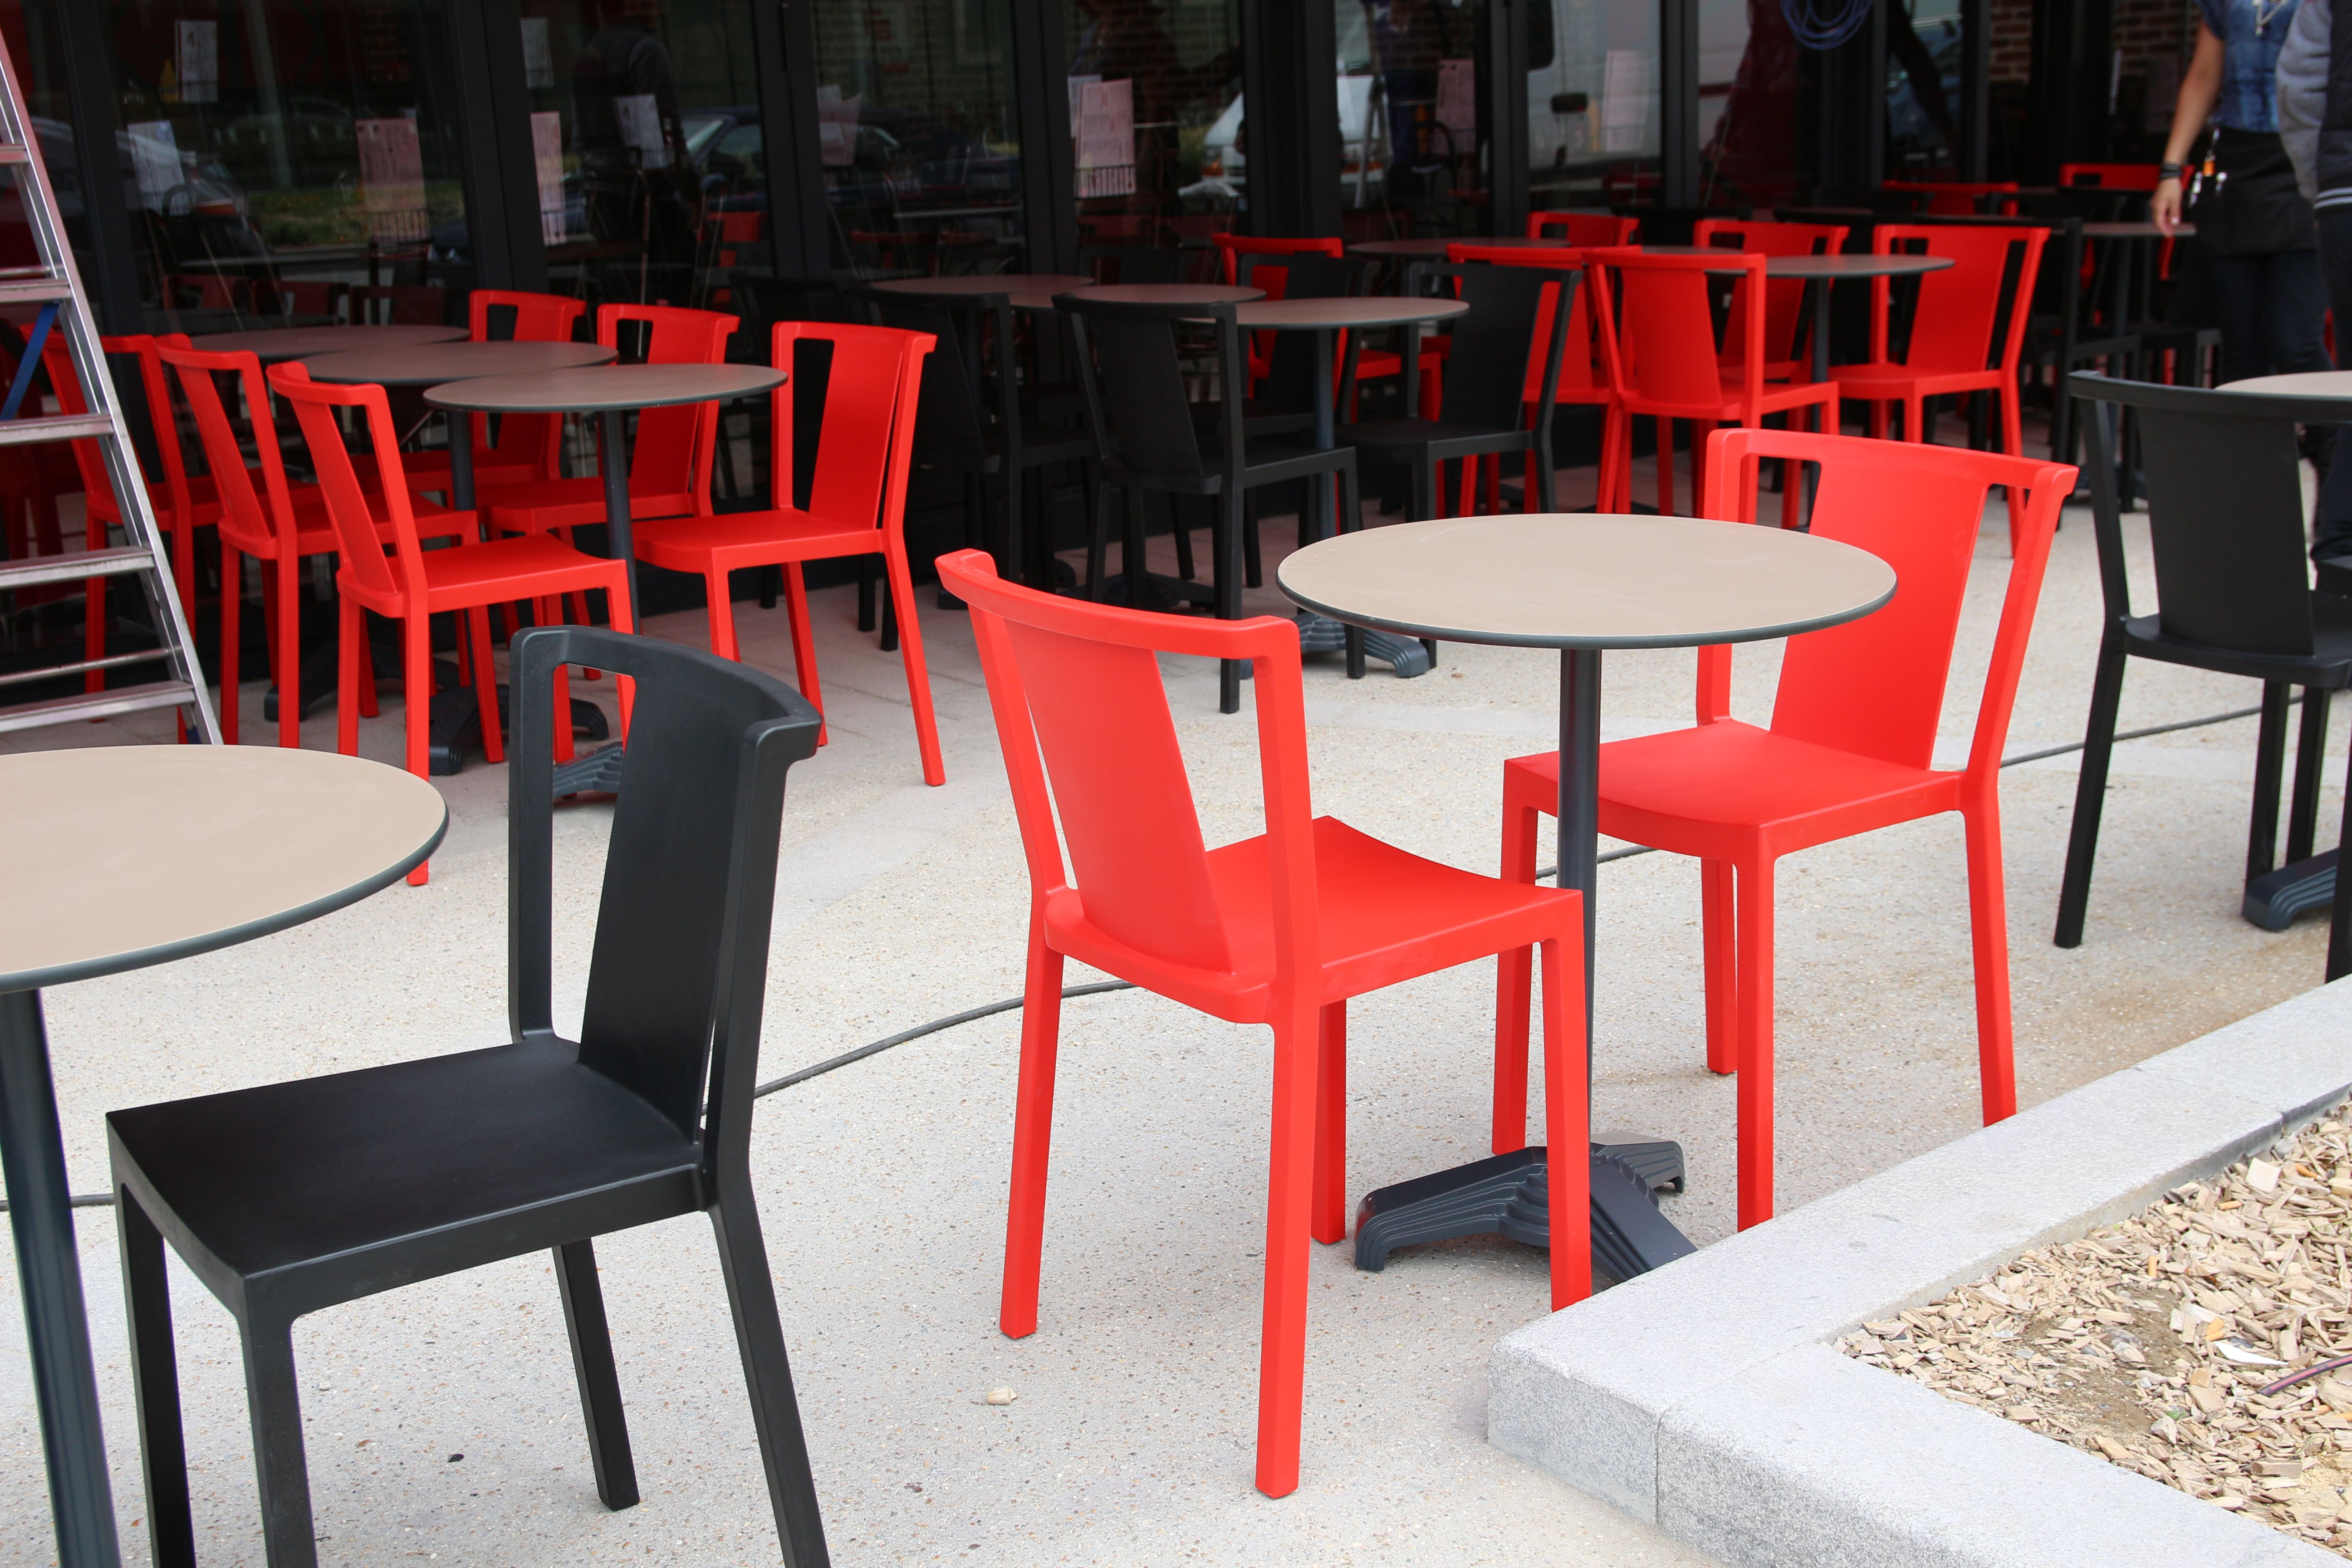 Terrasse Restaurant Mobilier Furniture Seat Stool Fauteuil Chaise Table Decoration Interior Chaise Terrasse Chaise Maison Du Monde Mobilier De Bar